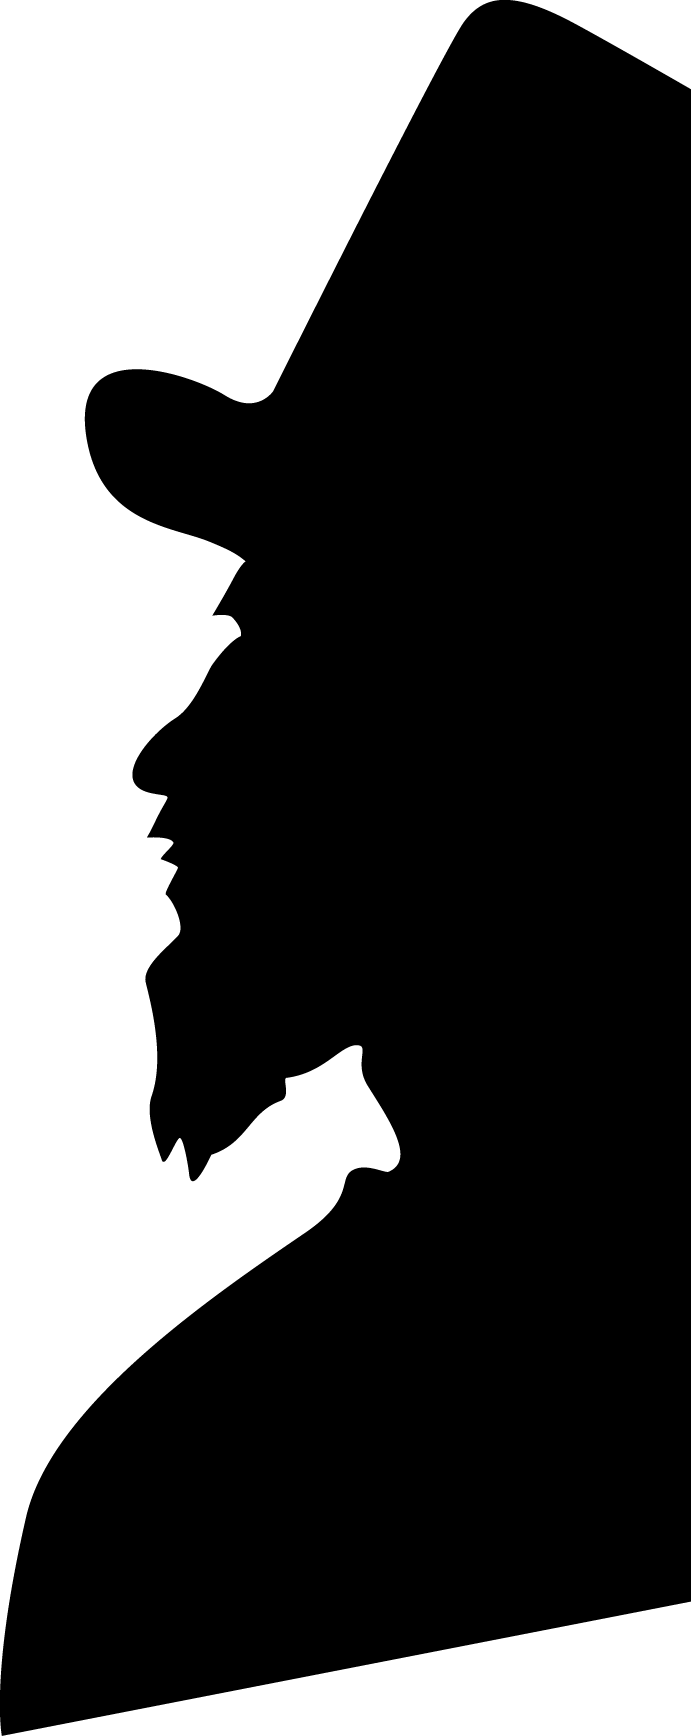 Silhouette of man in tophat